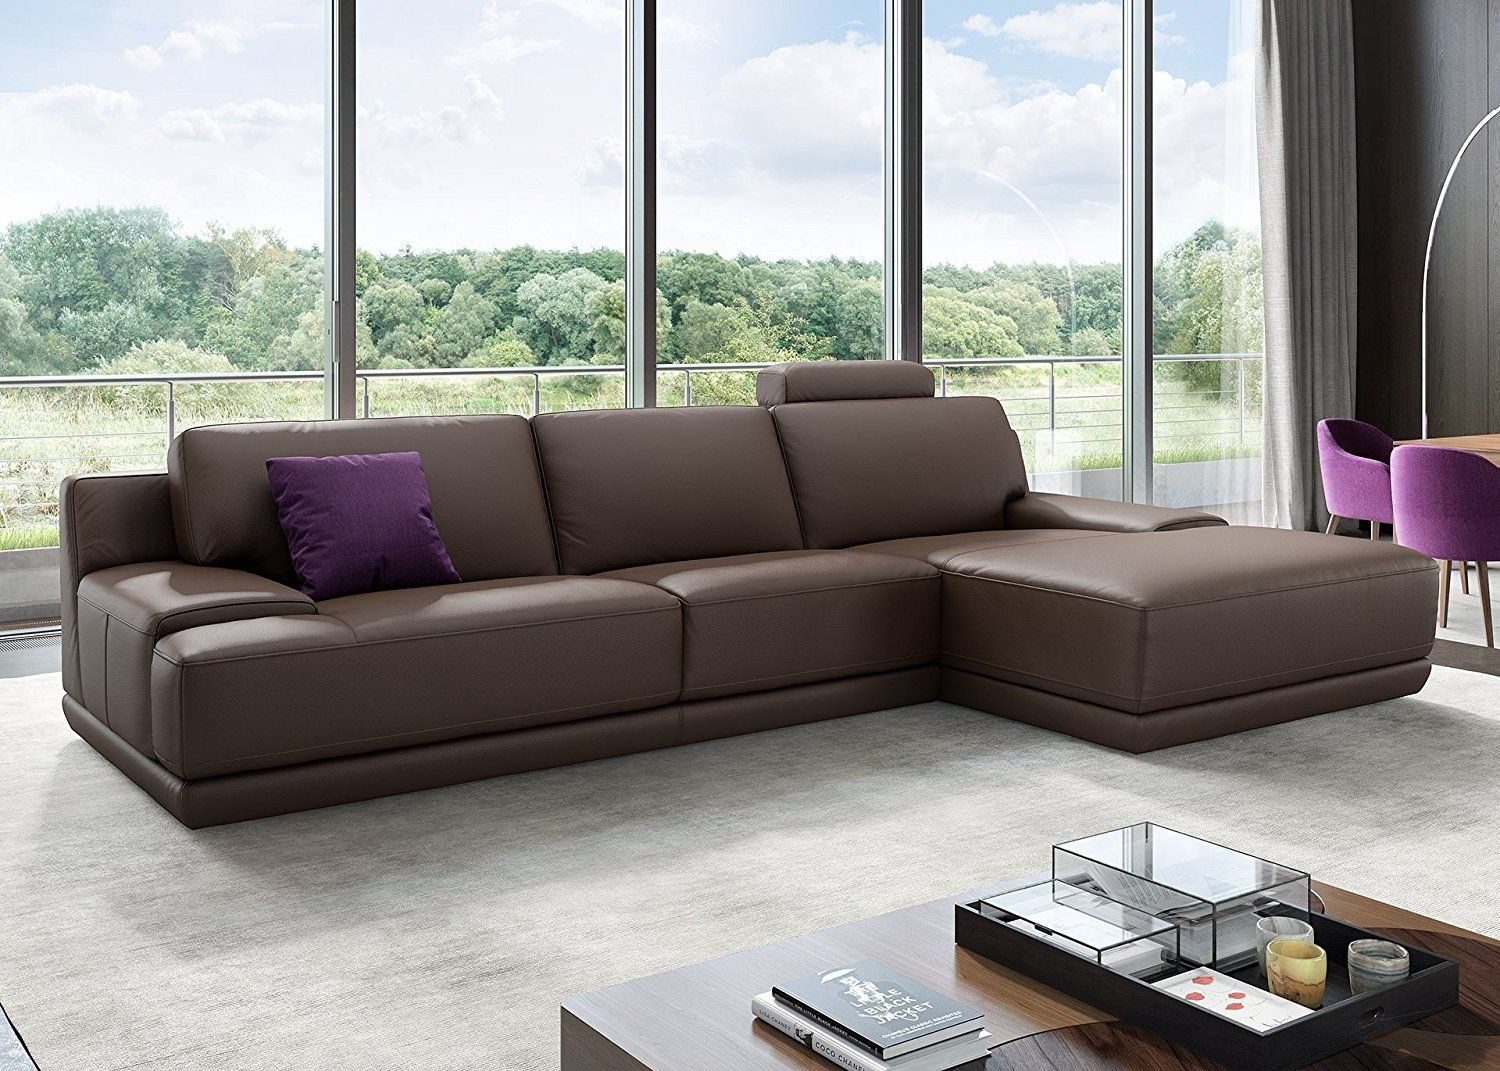 Amazing Eckcouch Leder The Best Of Design Ecksofa Sofa Couchgarnitur Wohnlandschaft Polsterecke Eckgarnitur